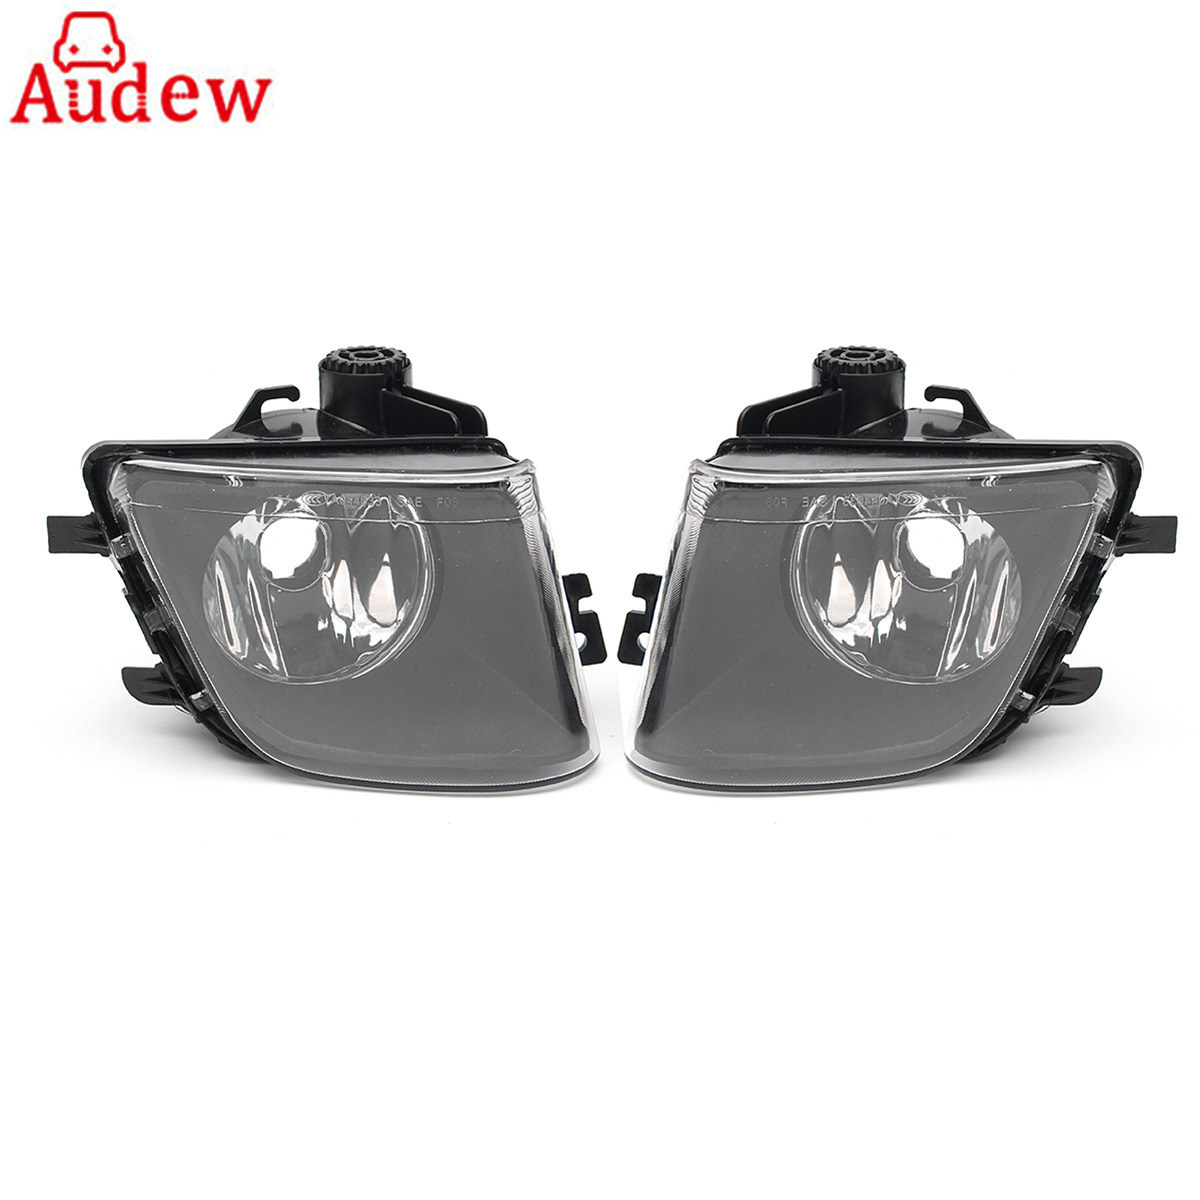 1 Pair Car Fog Lamp Driving Light Clear Lens Left&Right For BMW F01 F02 740i 740Li 750i 2009-2013 car fog lights lamp for mitsubishi triton 2 door 2009 on clear lens pair set wiring kit fog light set free shipping